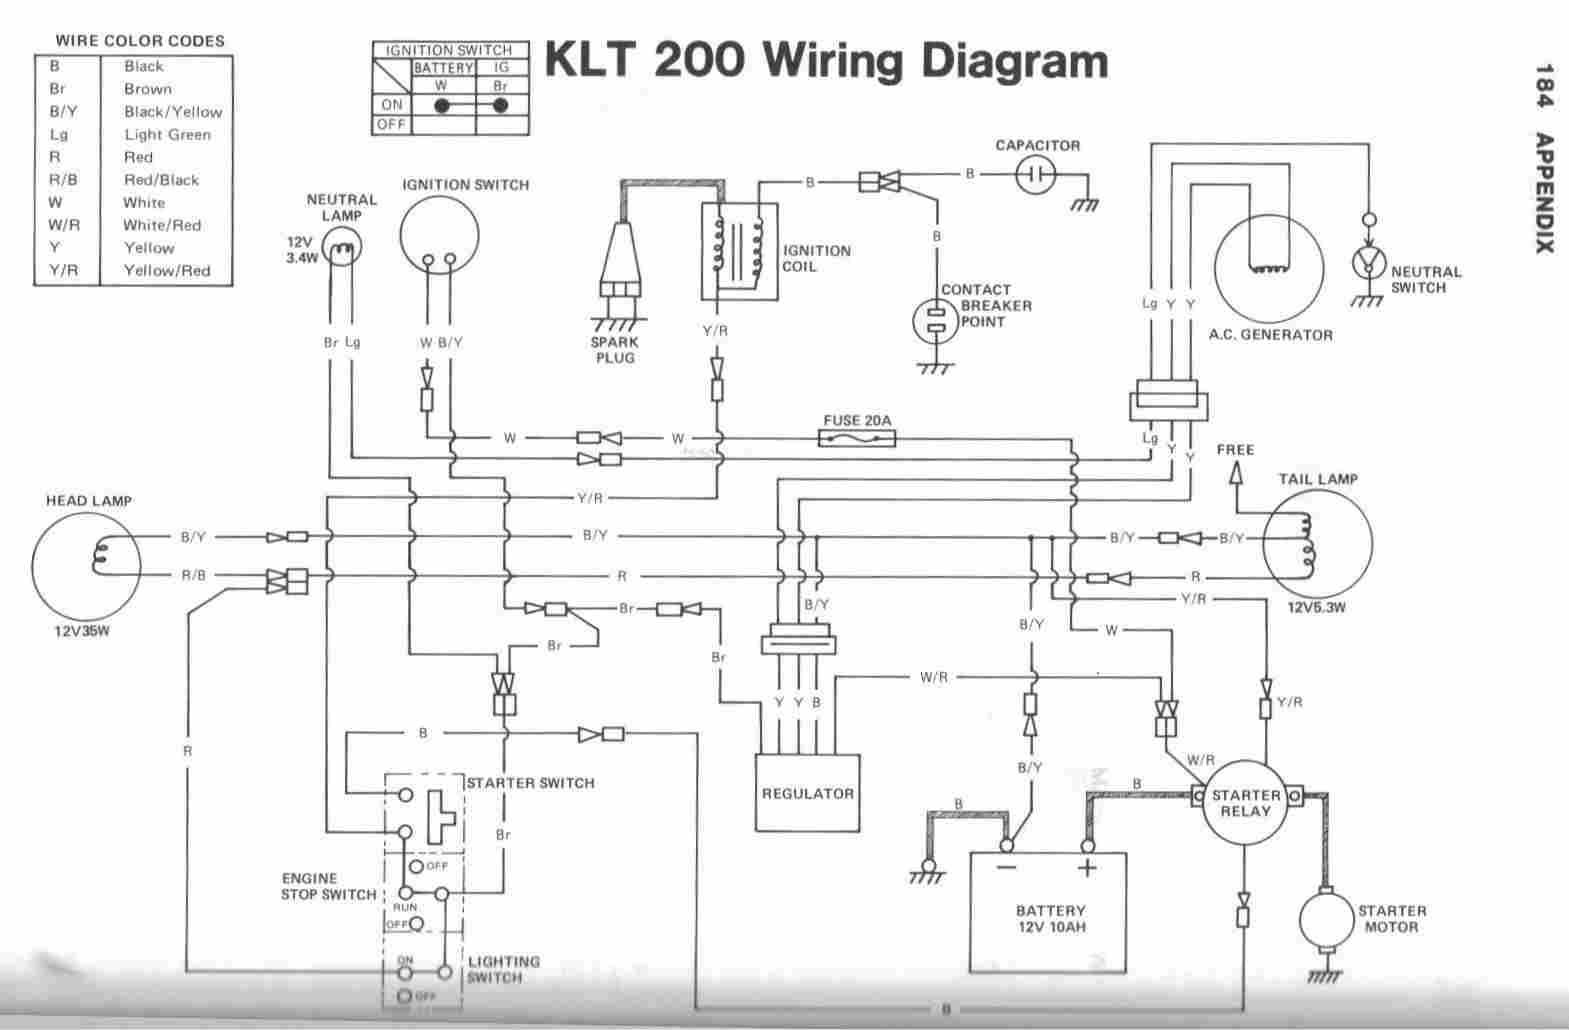 wiring diagram for residential wiring diagram for residential #2